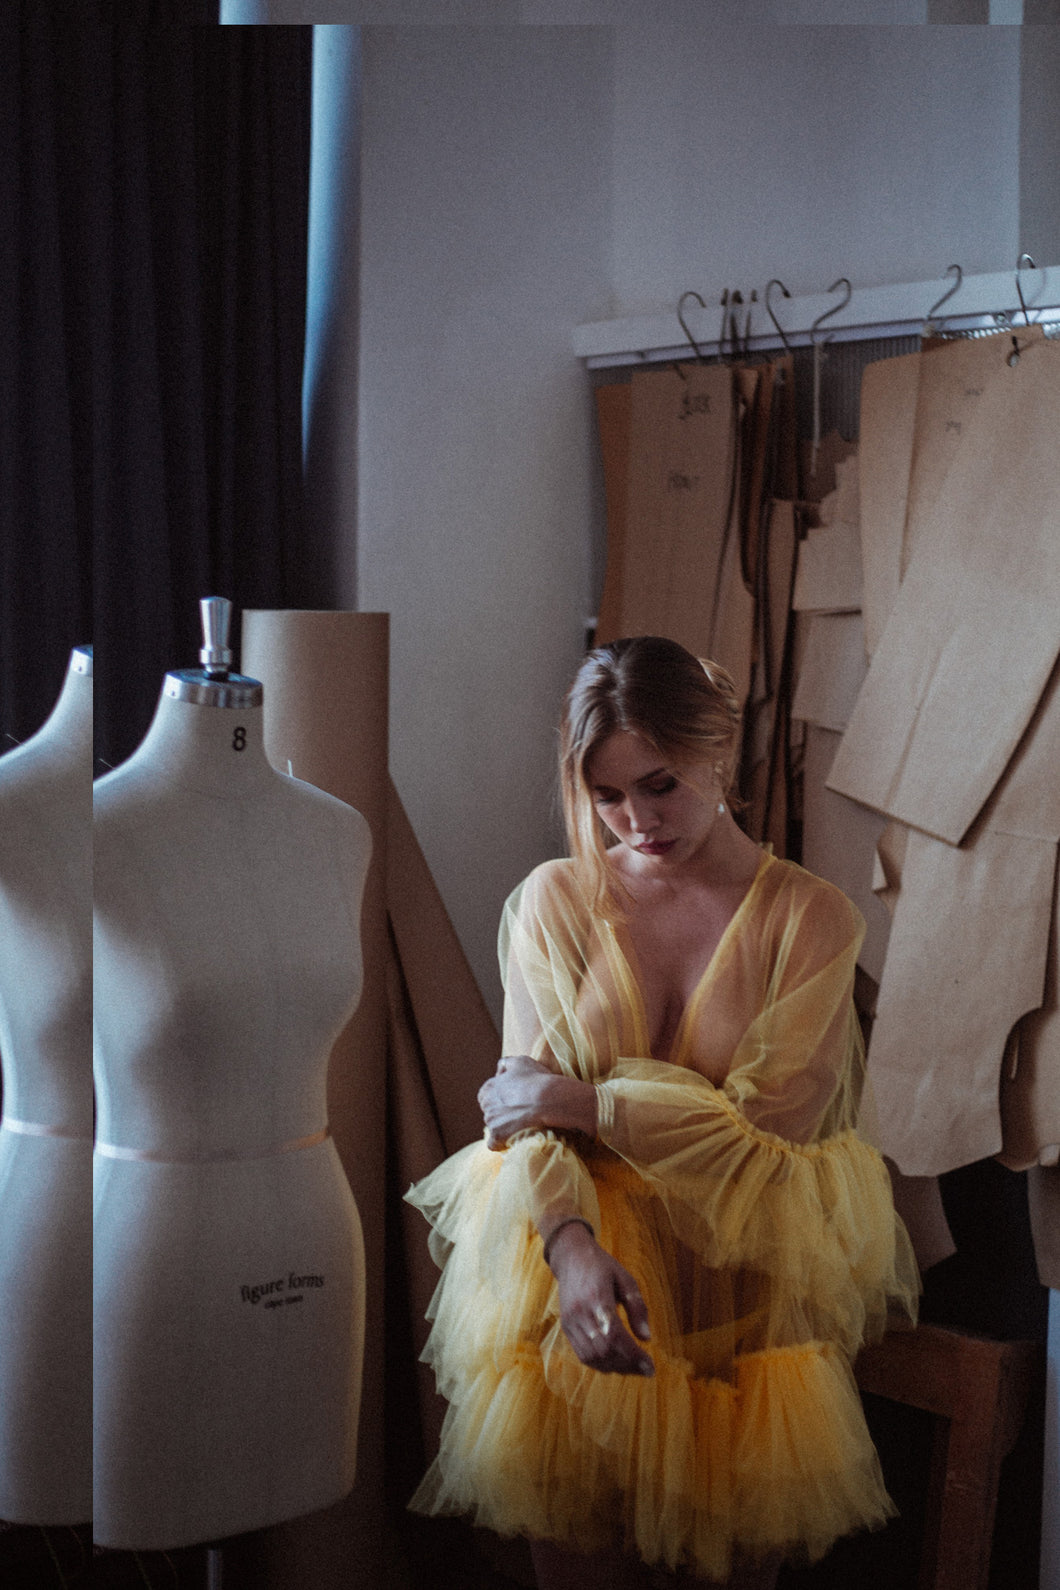 Model wearing sheer yellow tulle dress with ruffles